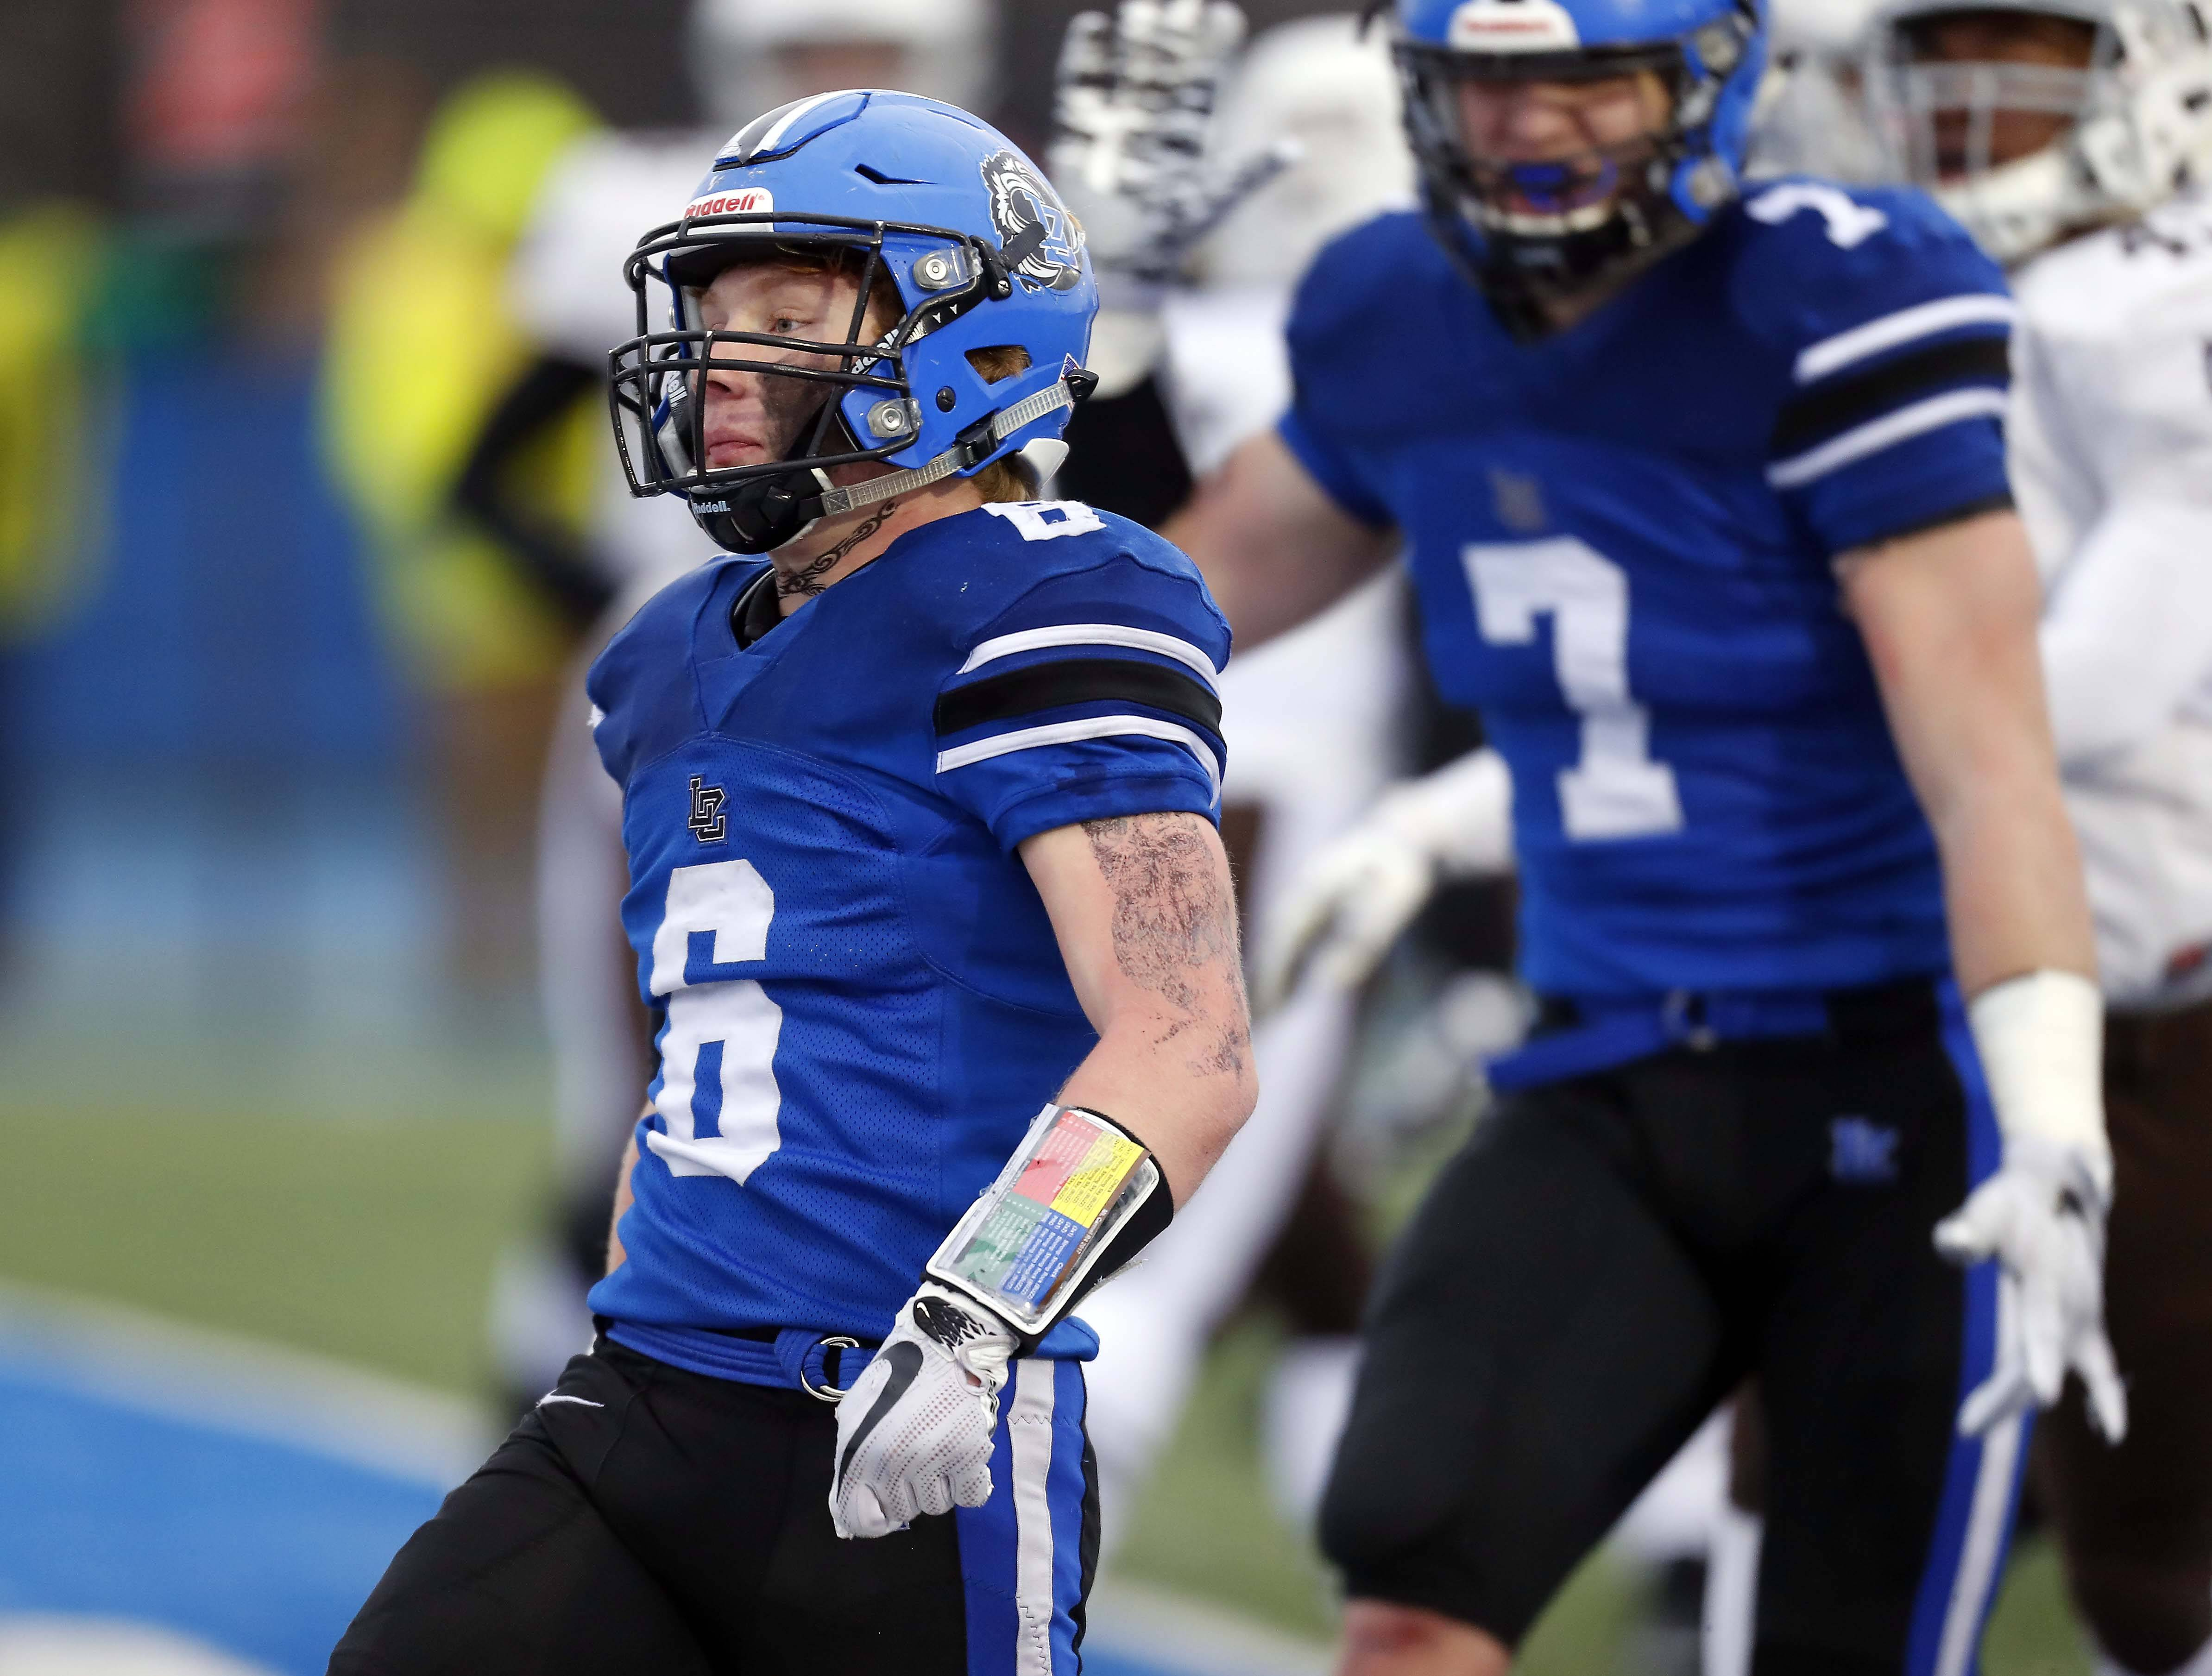 Lake Zurich's Joey Stutzman (6) struts into the end zone for a fourth-quarter touchdown against Mt. Carmel in the Class 7A state semifinals.